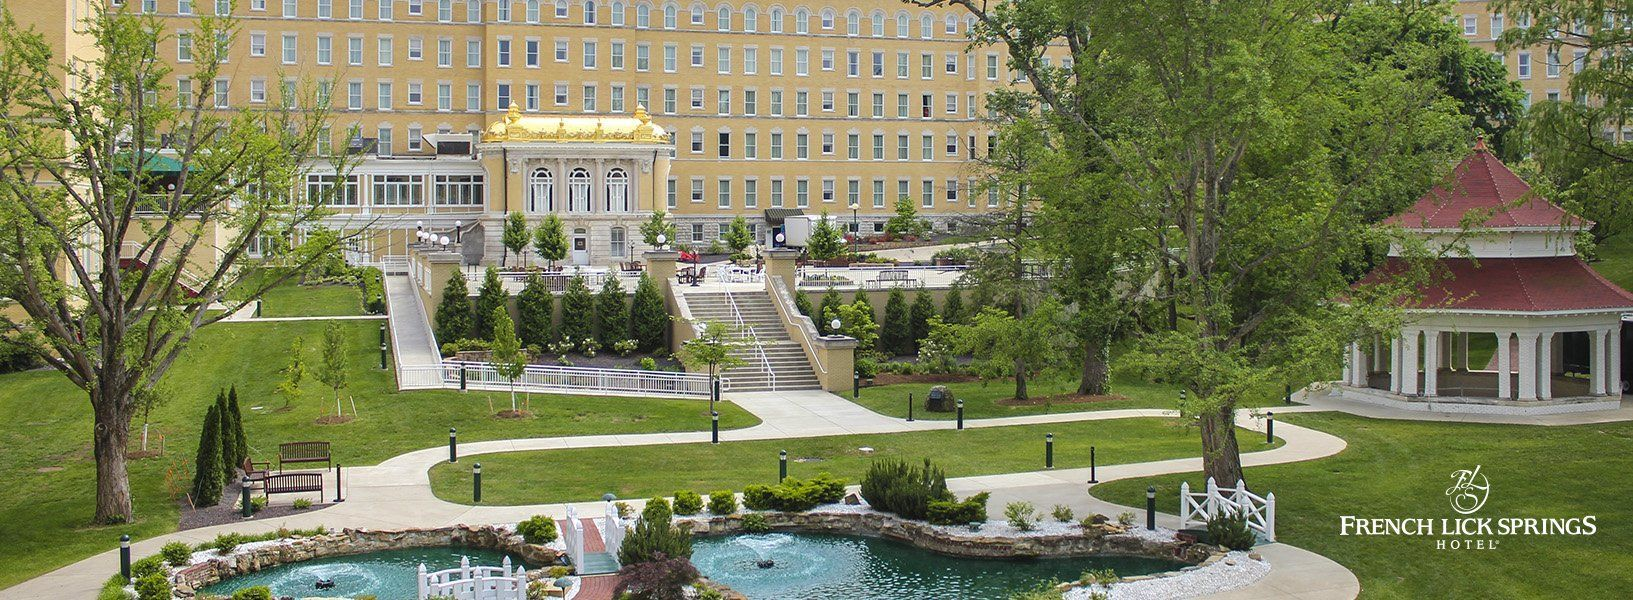 French lick spring